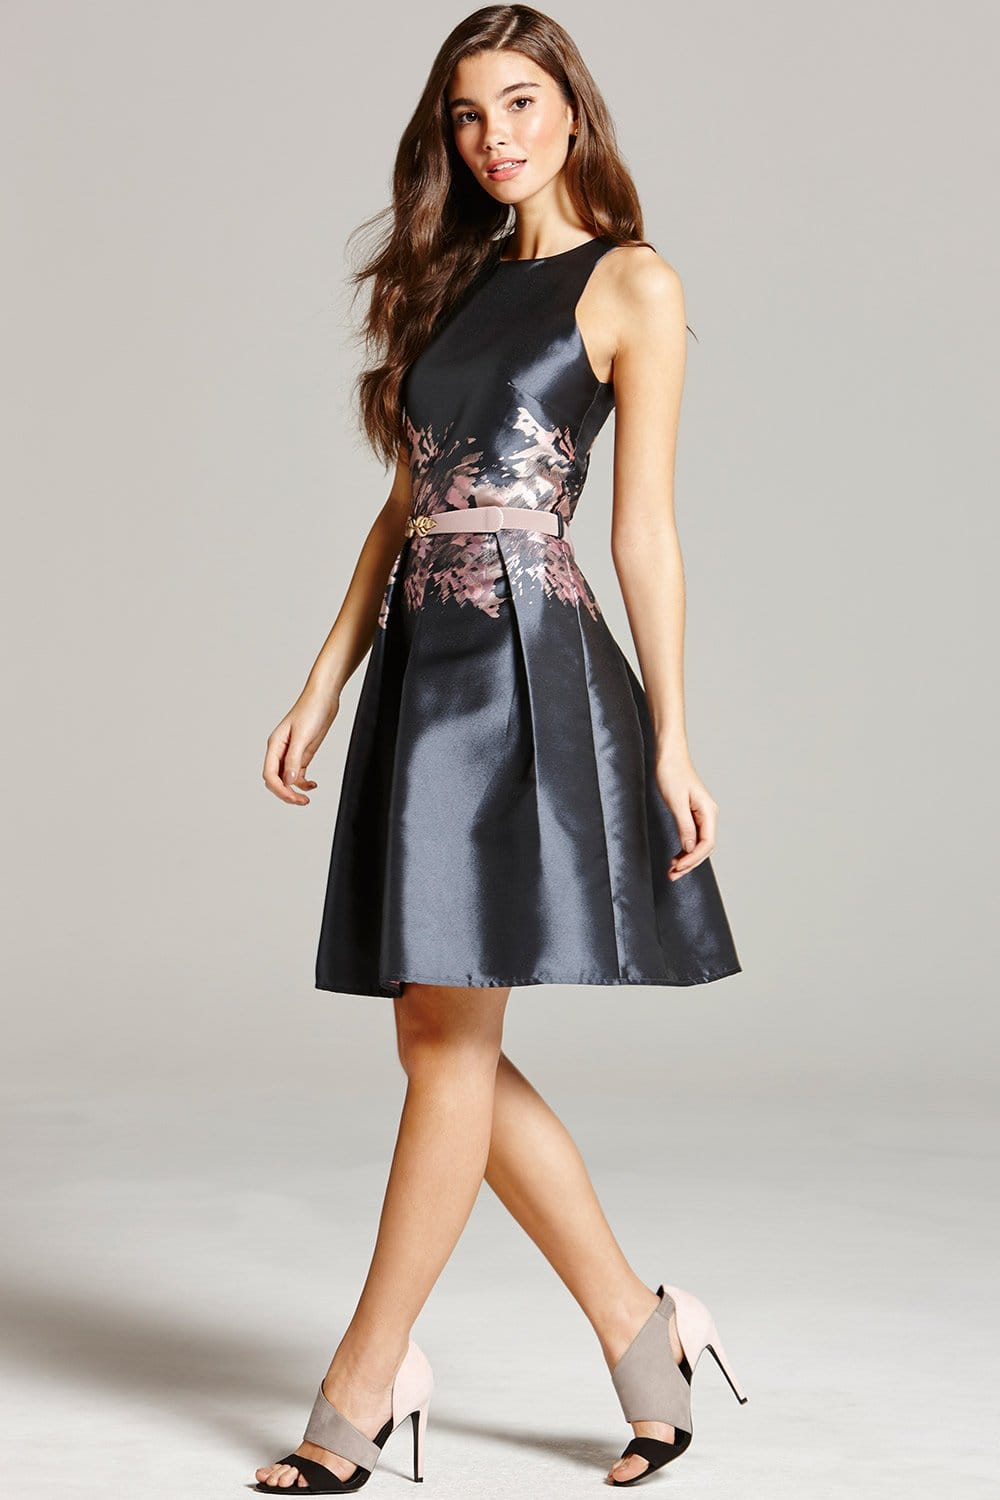 Grey Jacquard Print Fit and Flare Dress  from Little Mistress UK